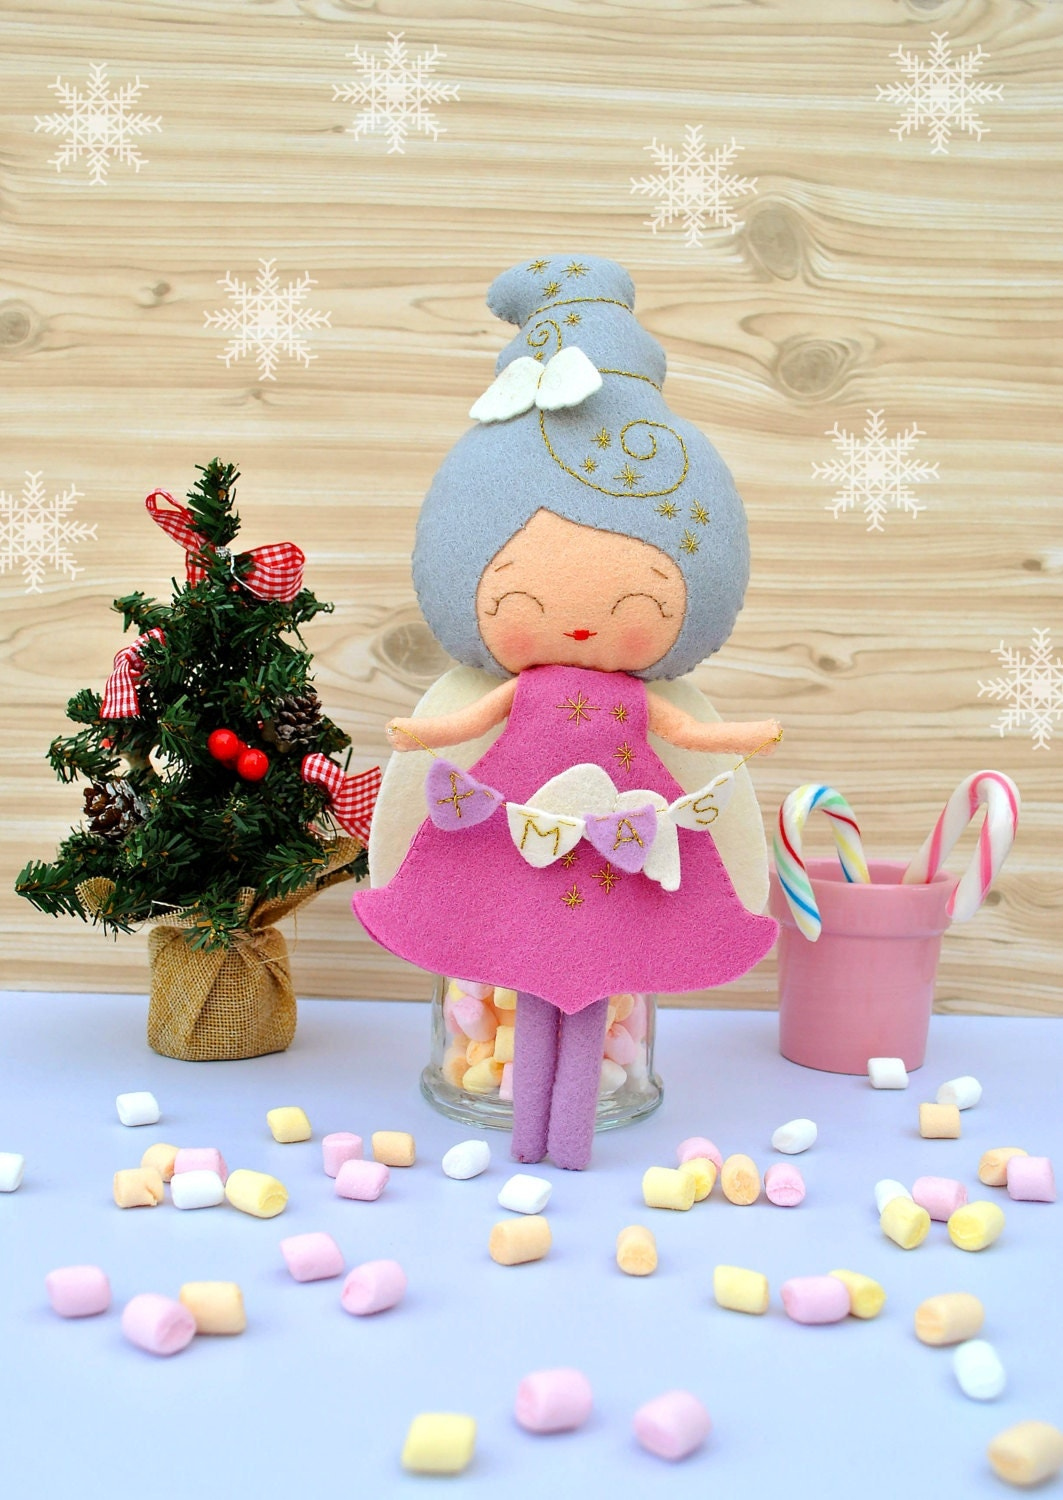 Christmas ornament expecting baby - Christmas Angel Felt Baby Doll Collectible Plush Toy Christmas Decoration New Year Gift Christmas Gift Baby